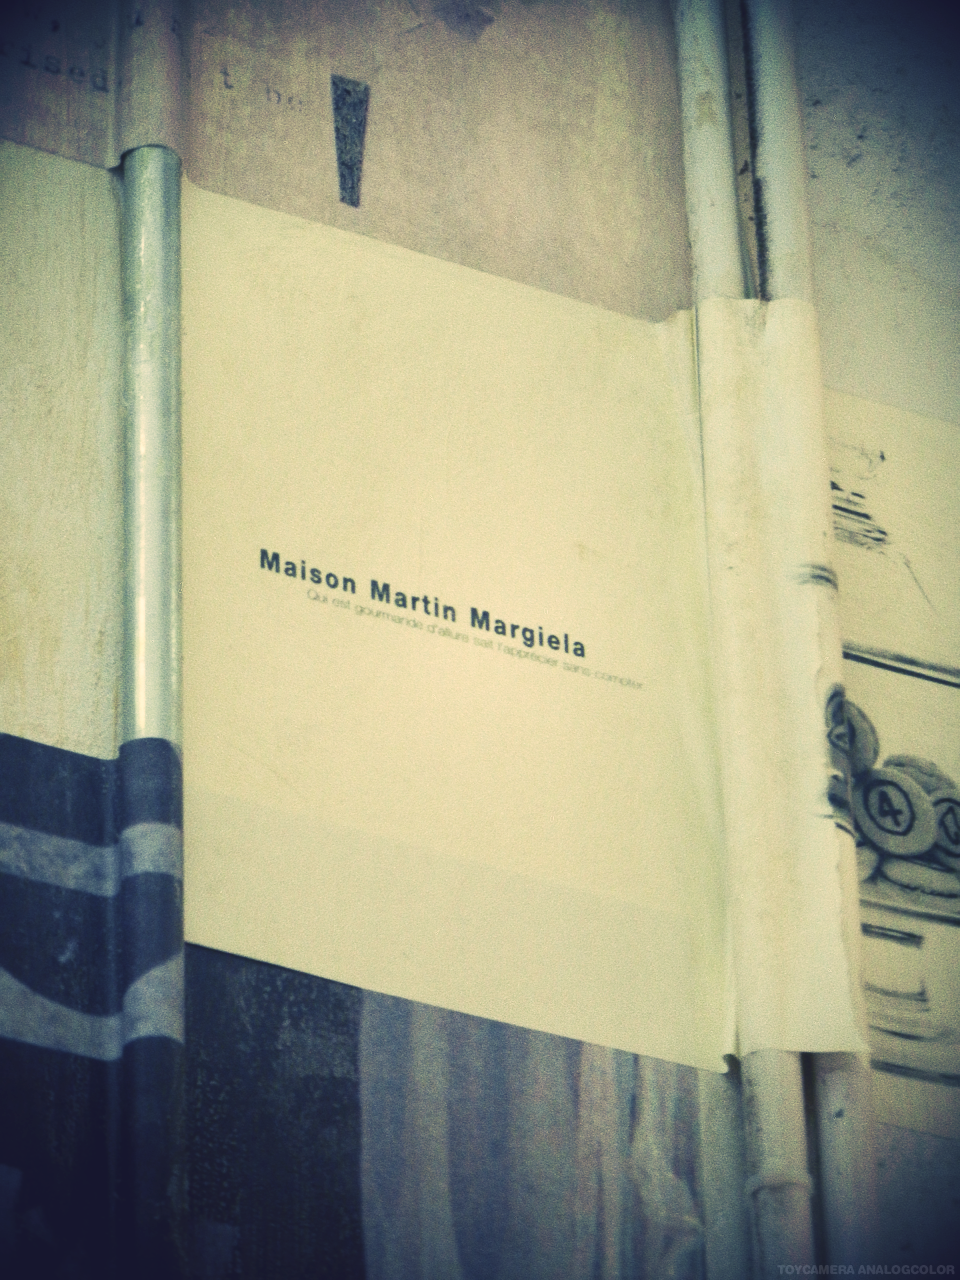 Wikipedia for Maison margiela wiki